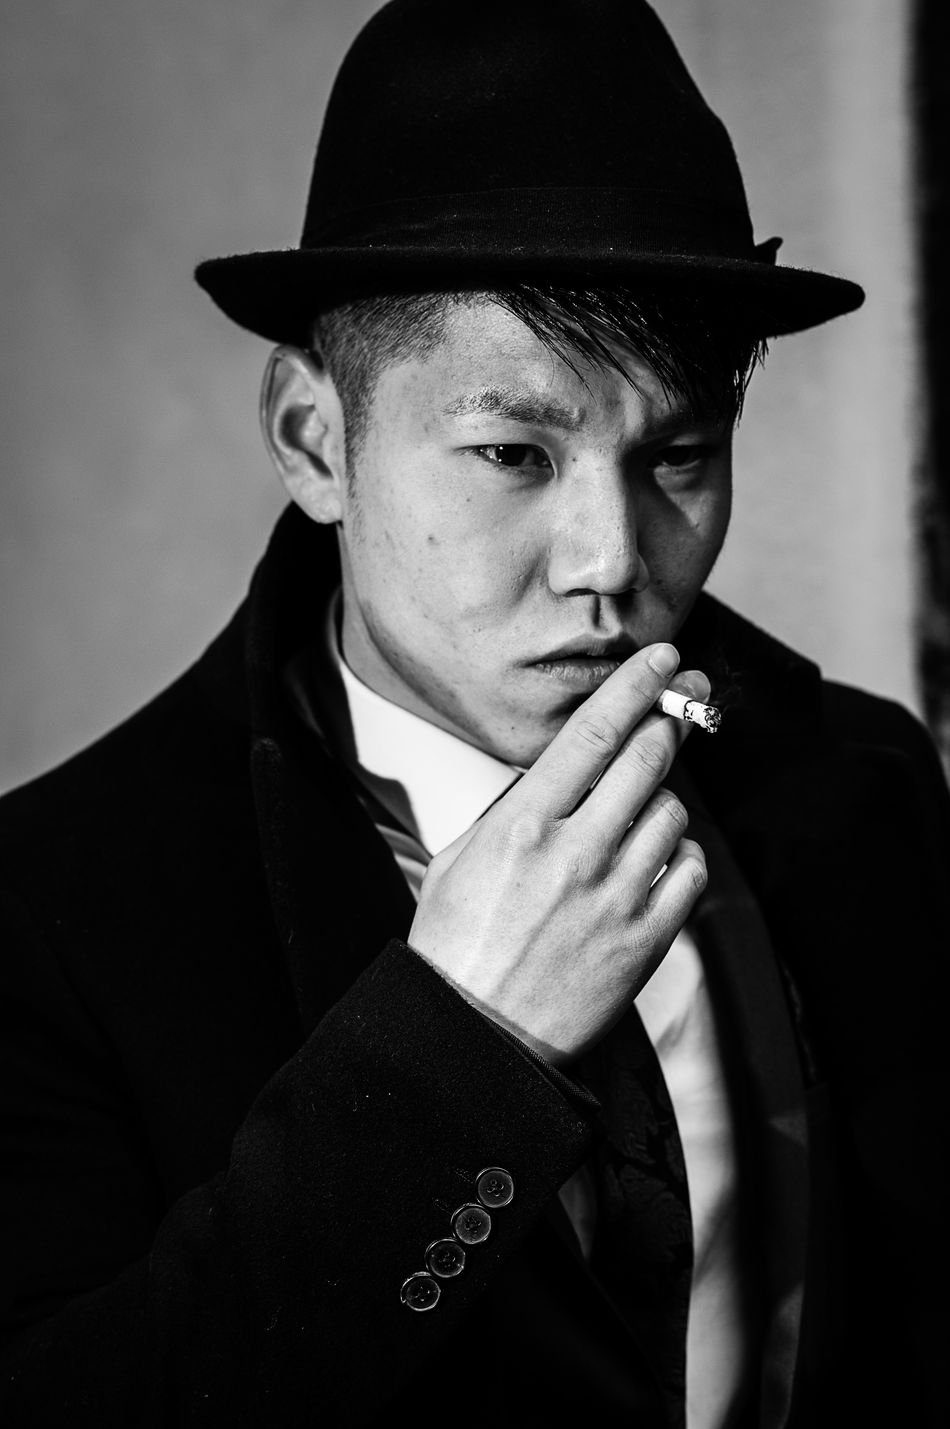 Daniel Noir Gangster Blackandwhite Portrait Photography Black And White Monochrome Photography Filmnoirmood Black And White Collection  Portraits Black & White Filmnoir Monochrome Deanstreetdesigns Noir Et Blanc Black And White Photography Portraiture Blackandwhite Photography PortraitPhotography Blackandwhitephotography EE_Daily: Black And White Portrait Headshot Portrait Of A Man  Portraits Of EyeEm